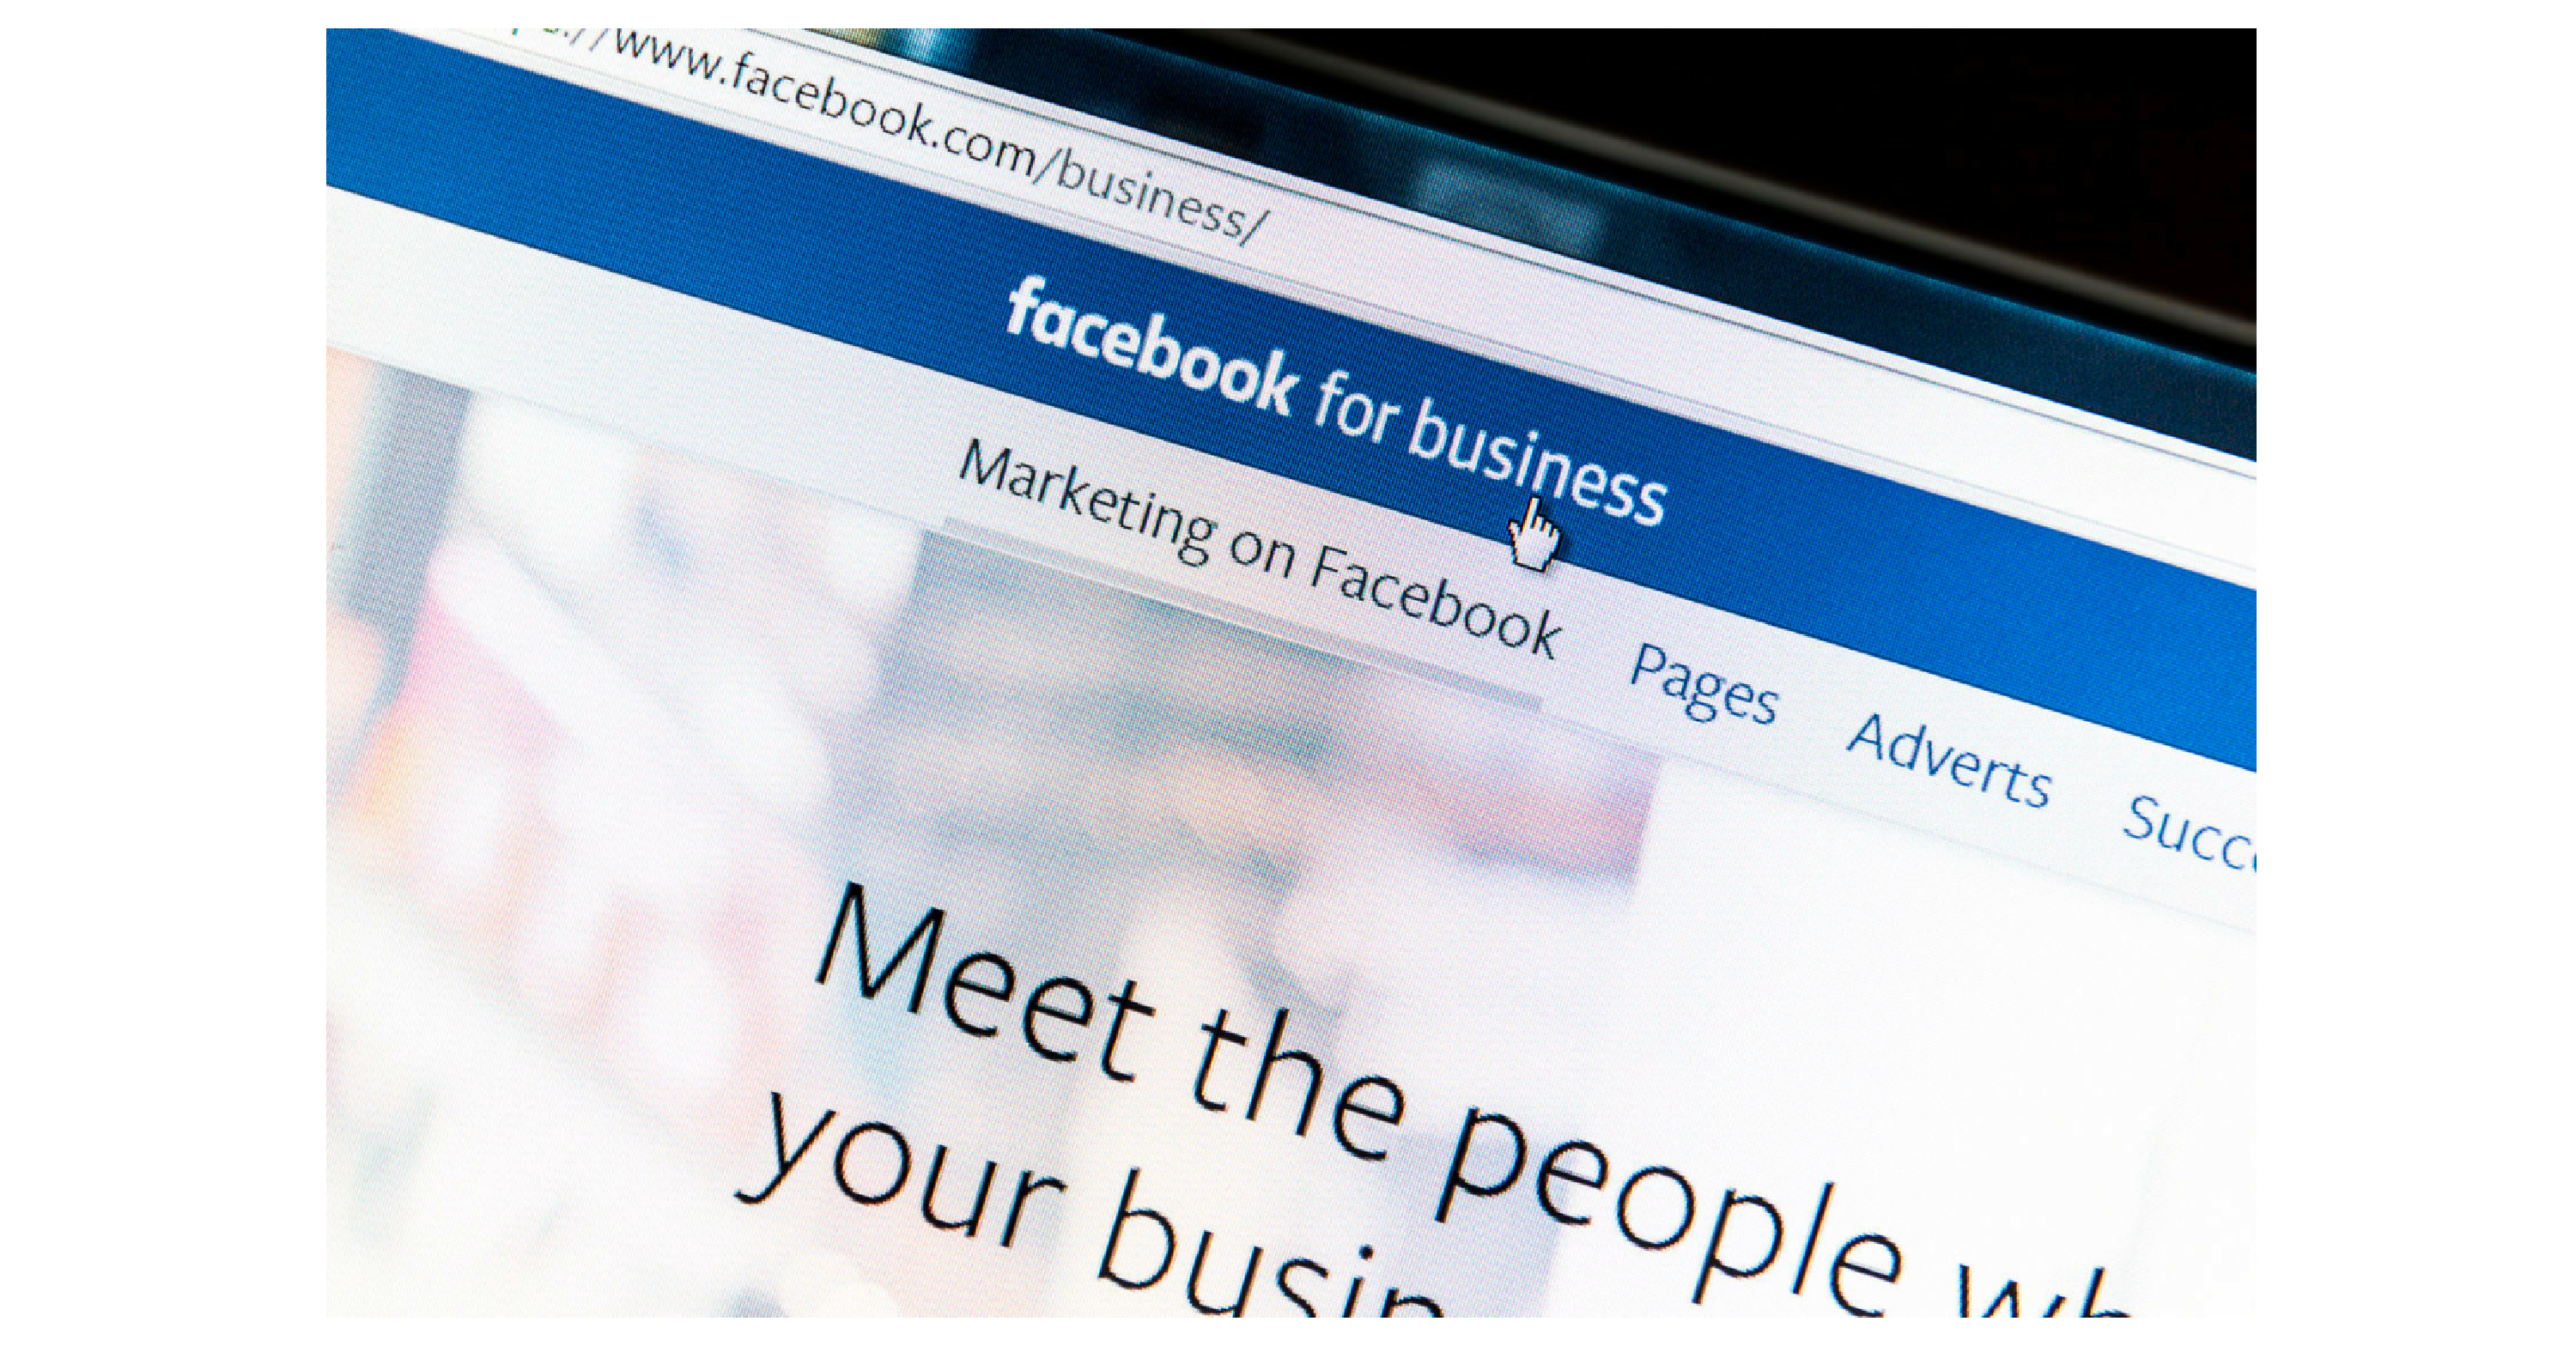 Why Many Small Businesses Should Market On Facebook